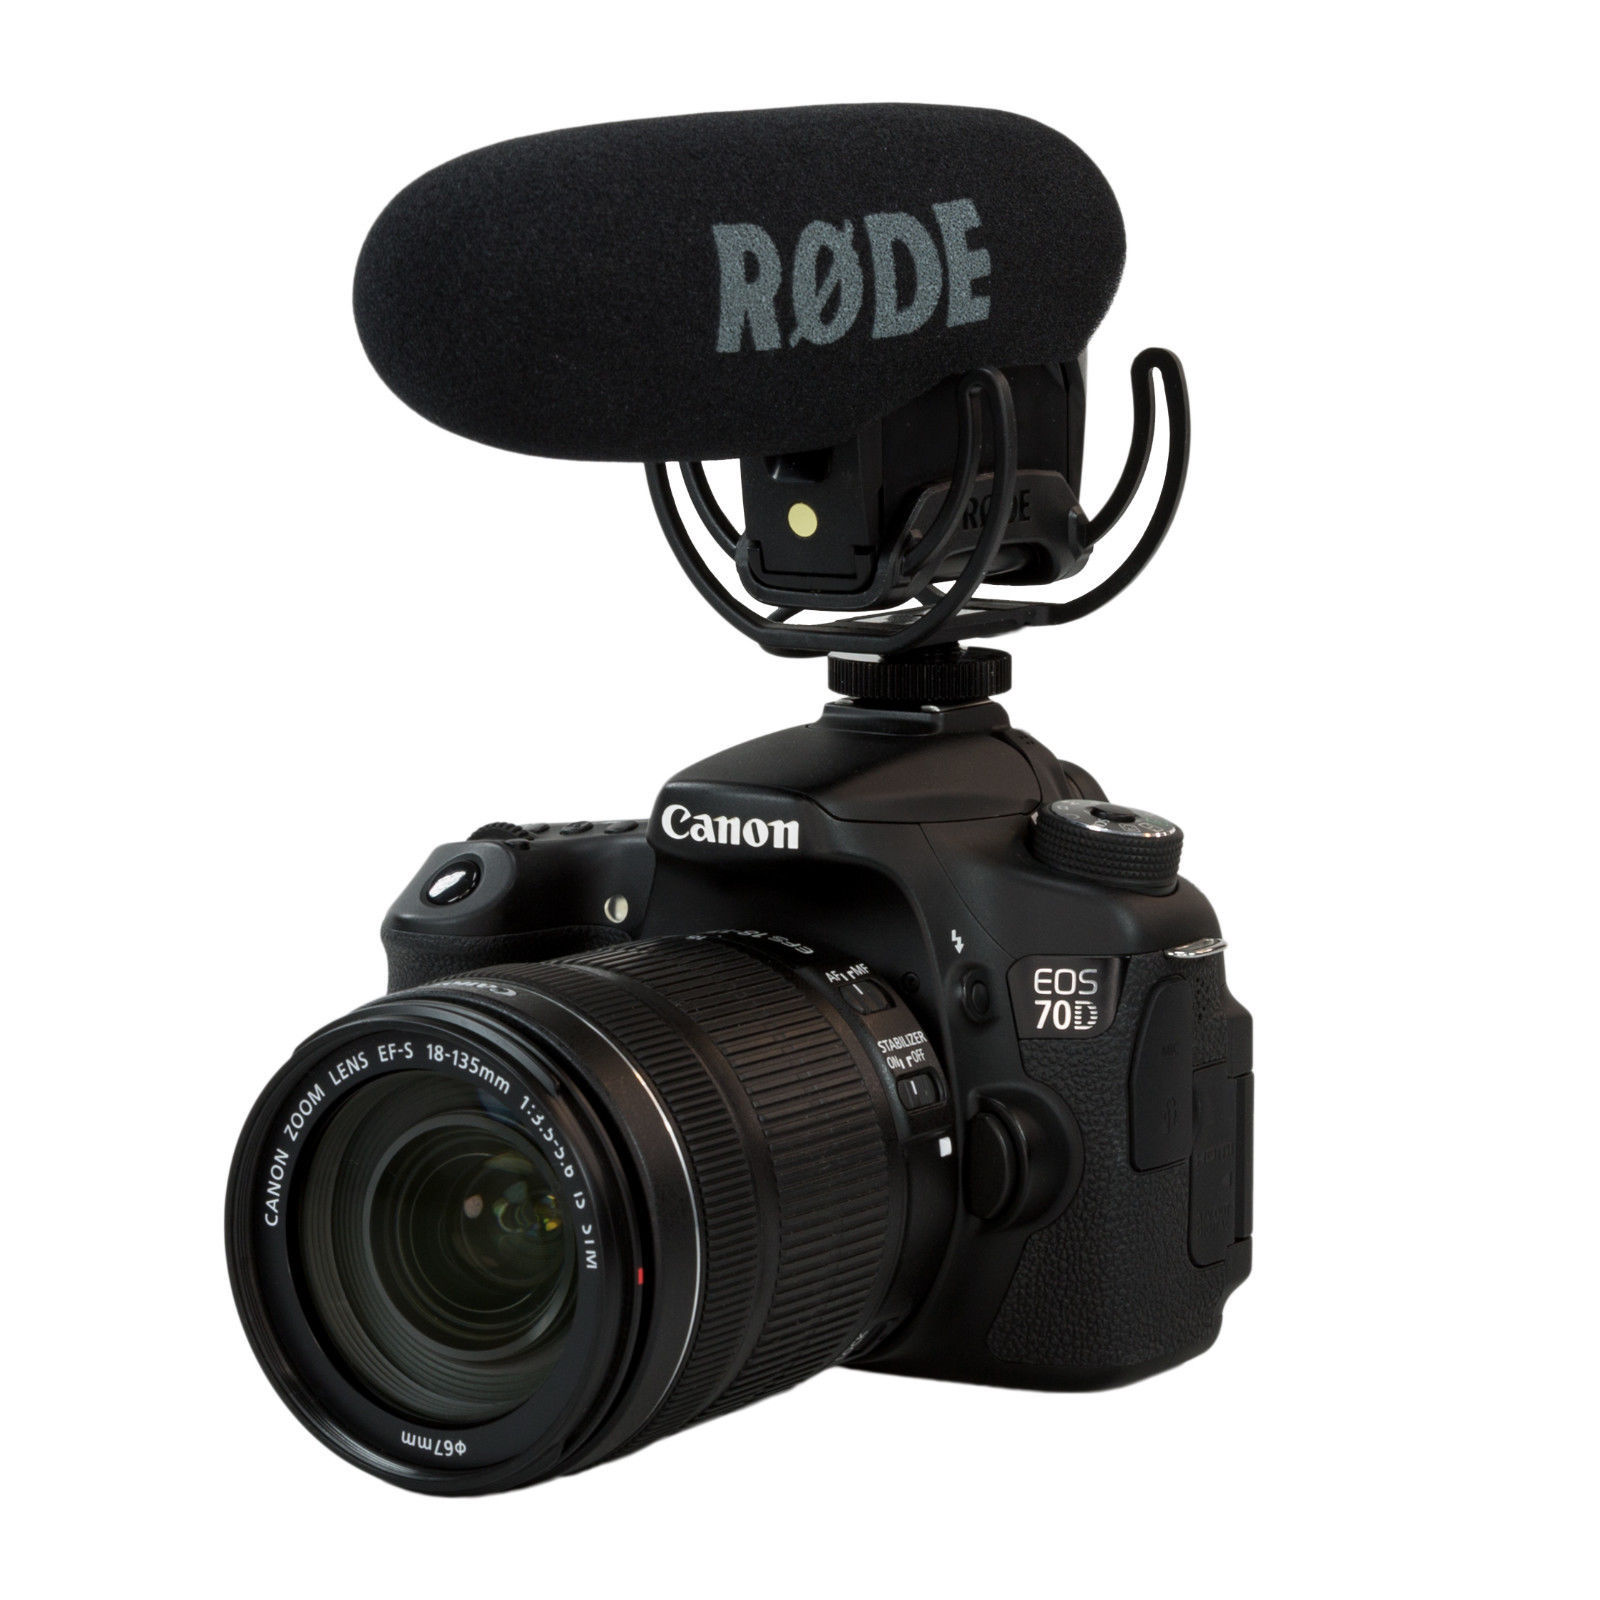 Best External Mic for Vlogging Rode Entrepreneur